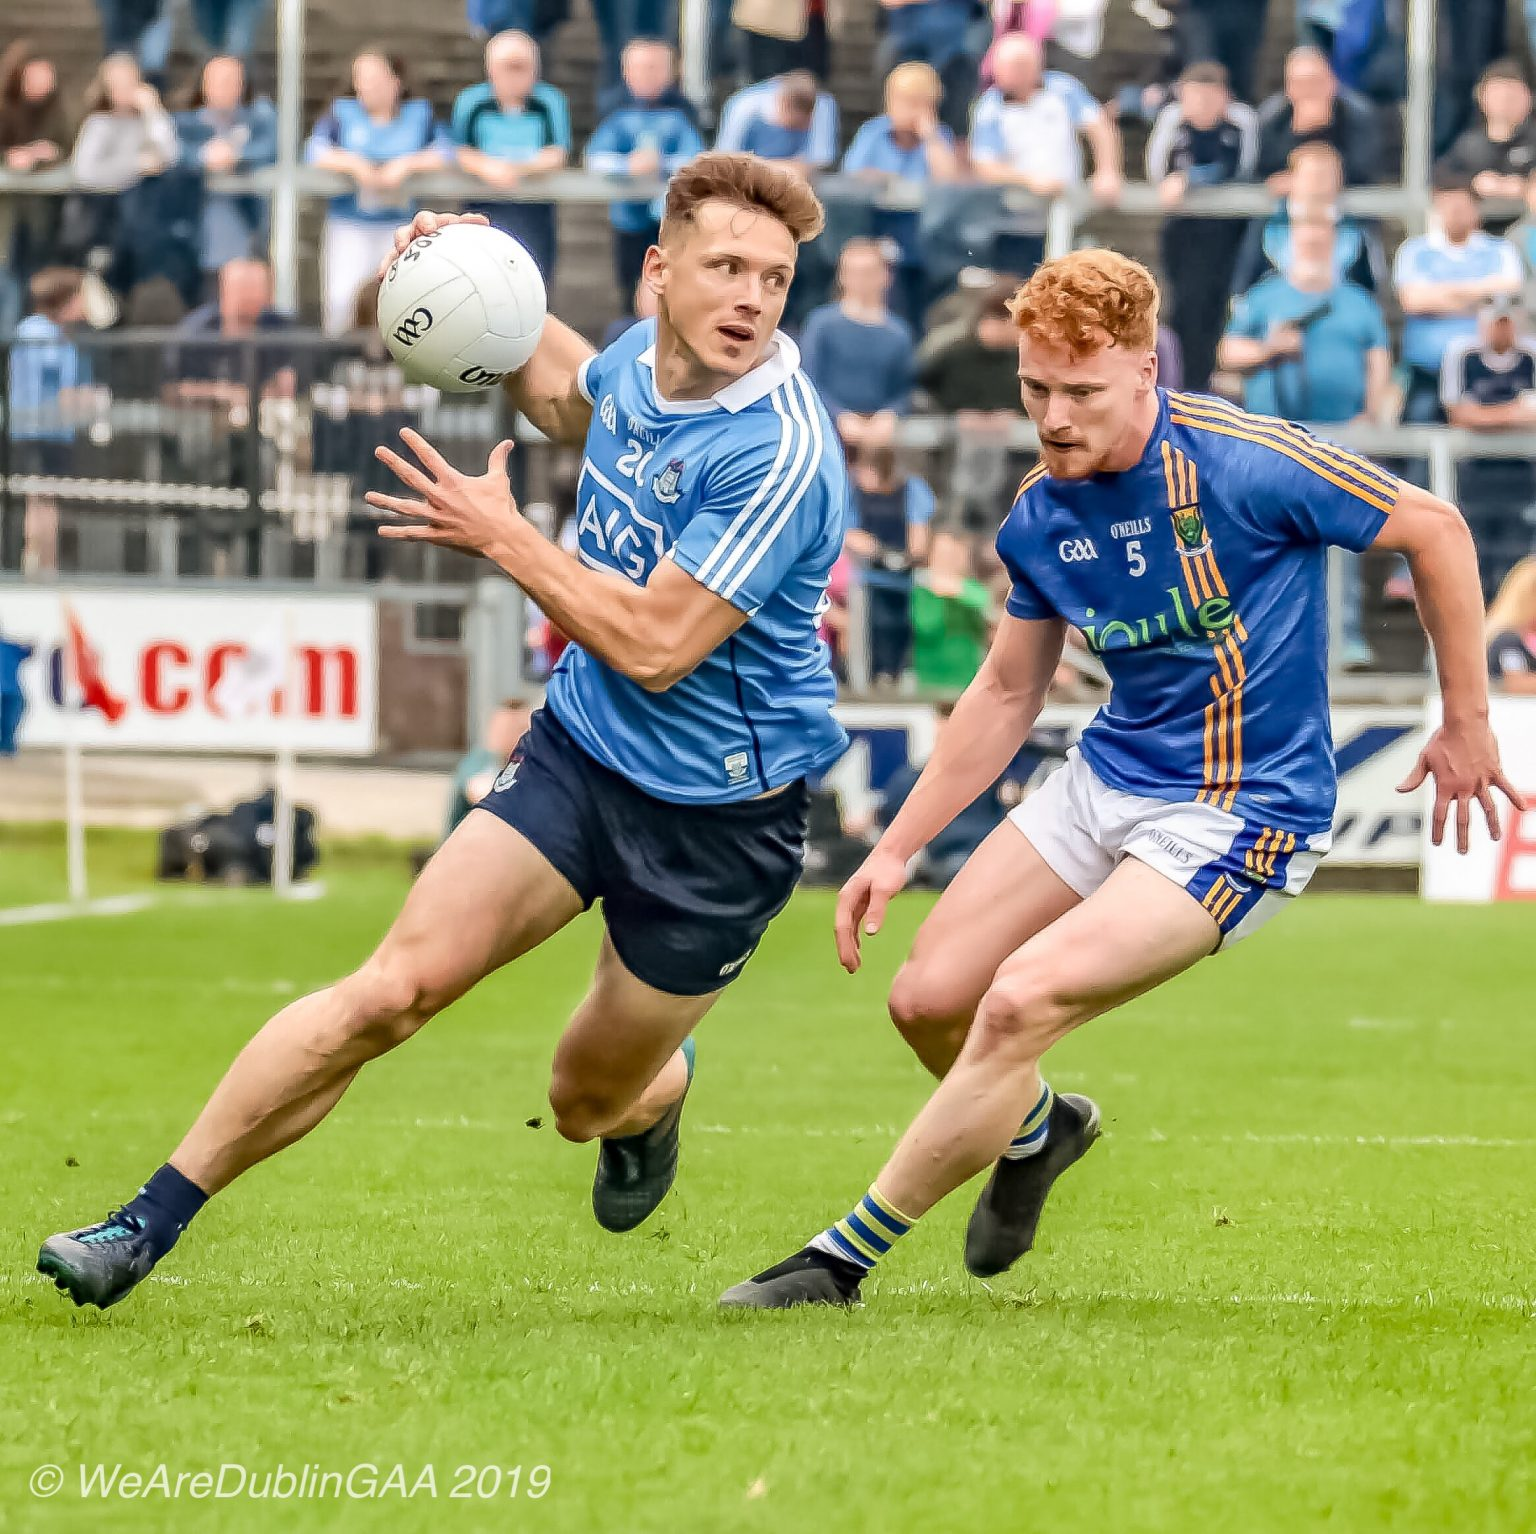 Dublin footballer Paul Flynn in a sky blue jersey and navy shorts gets away from a Wicklow player in a dark blue jersey with yellow stripes down the front and white shorts with blue and yellow trim.